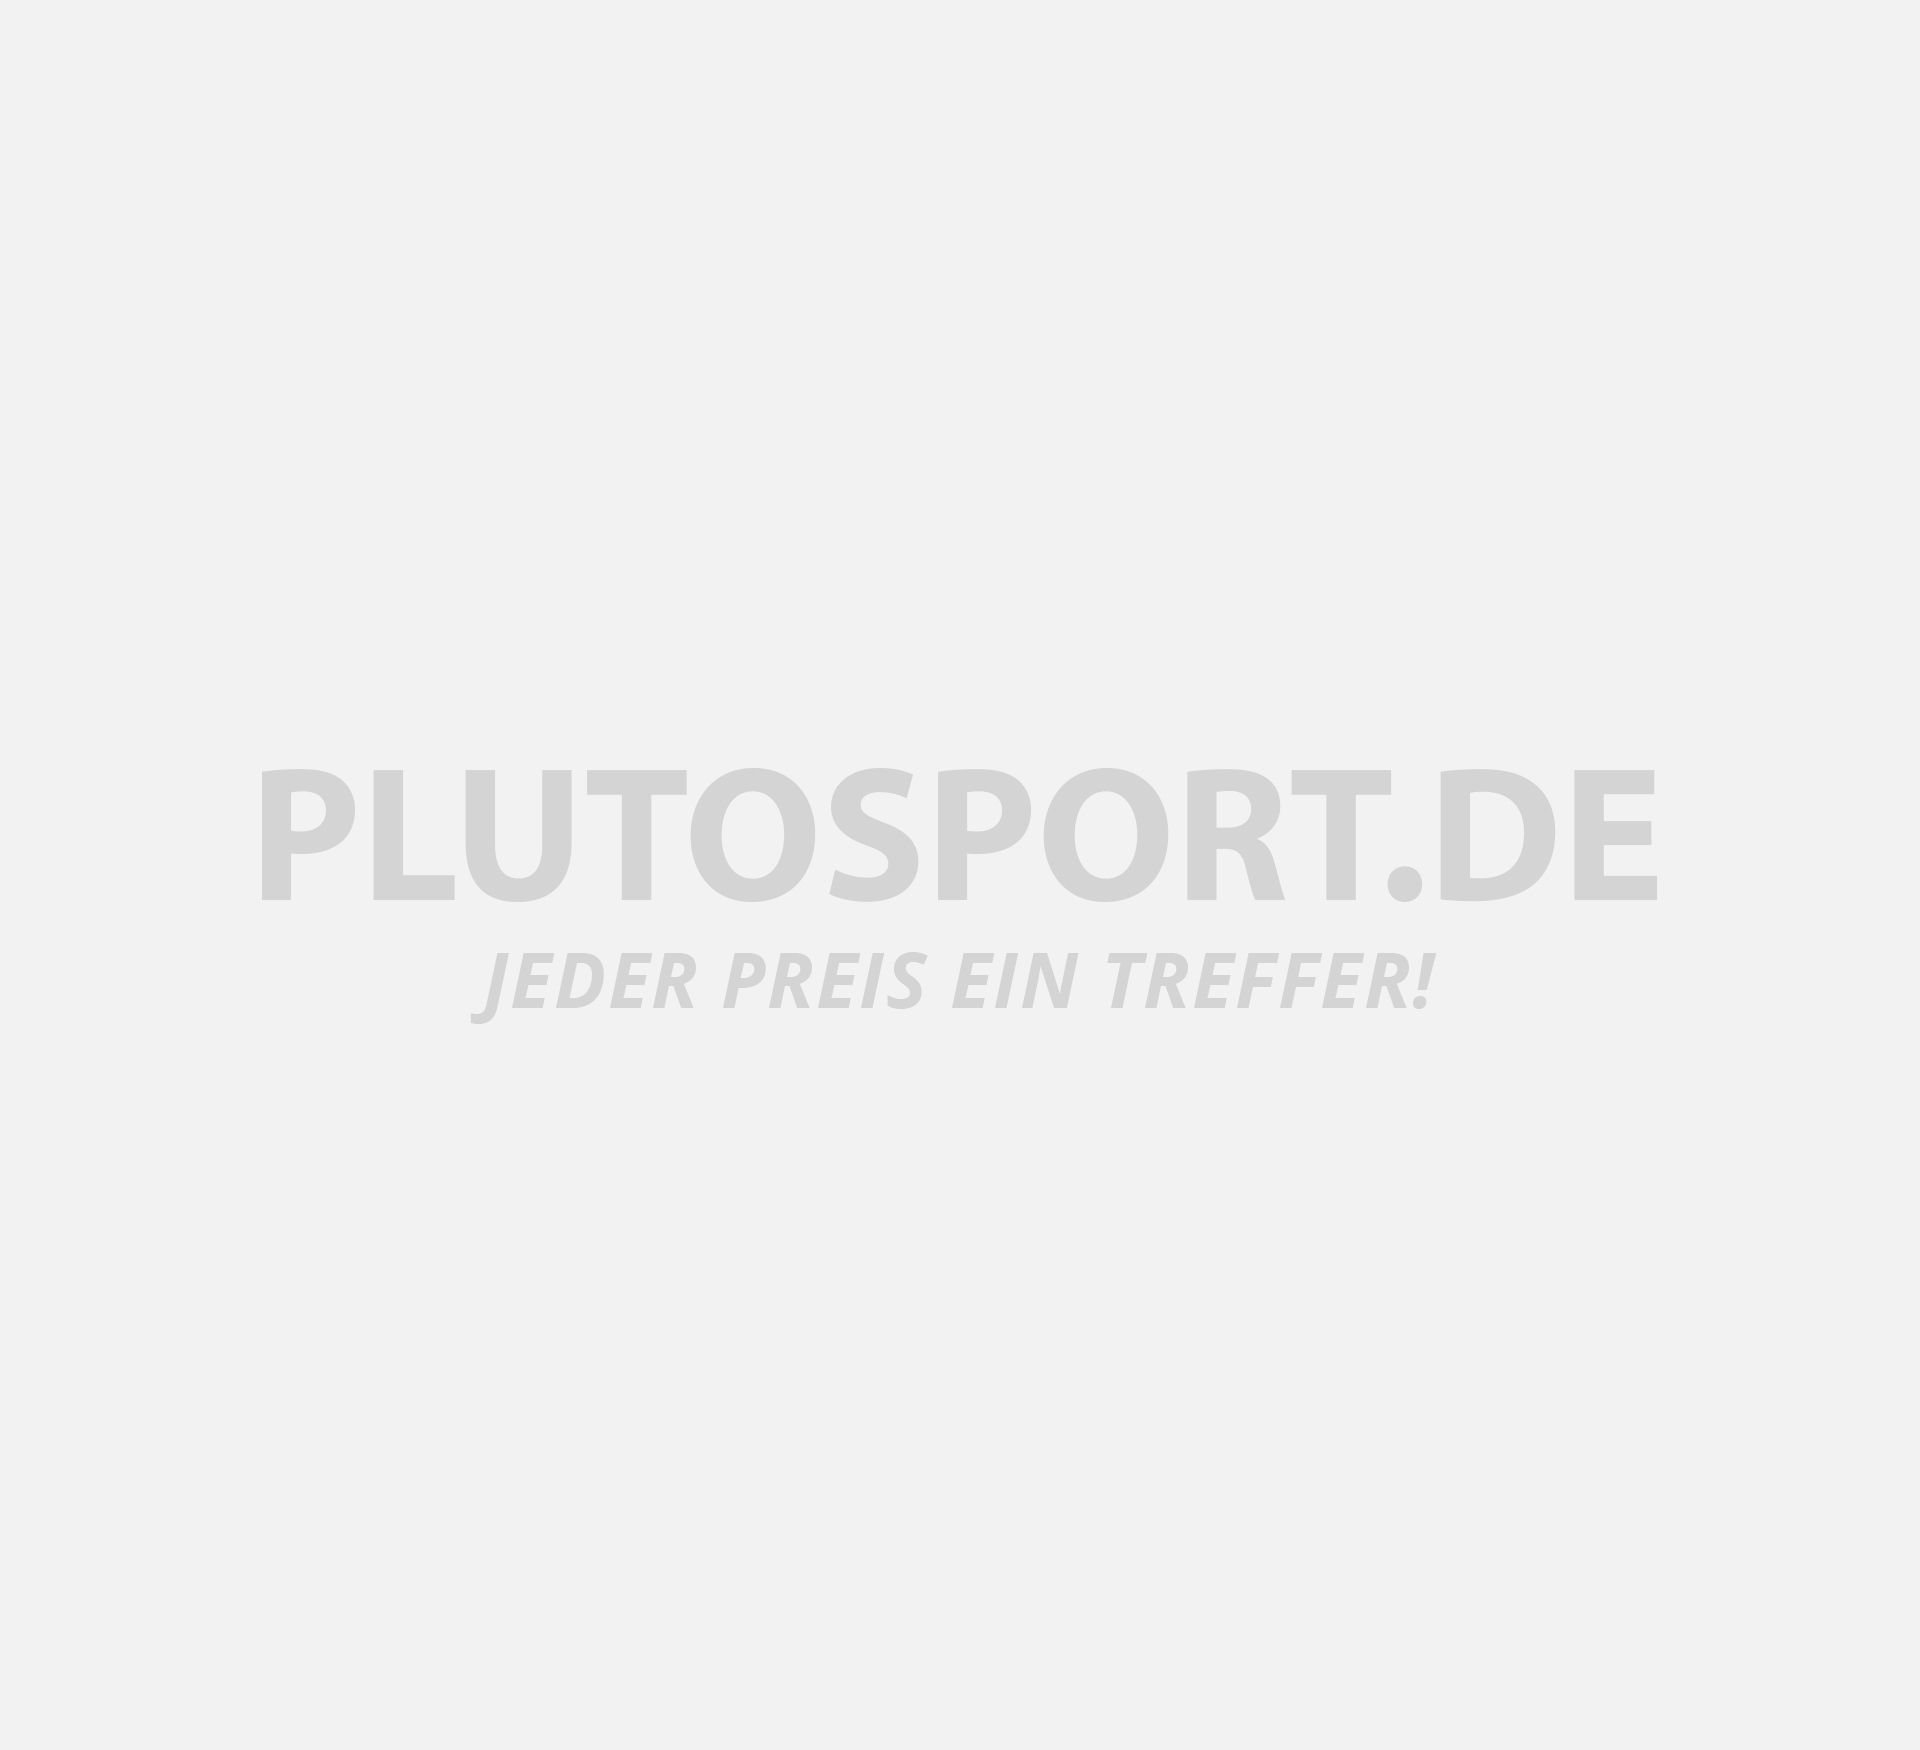 nike hypervenom phinish fg fussballschuhe mit festen. Black Bedroom Furniture Sets. Home Design Ideas